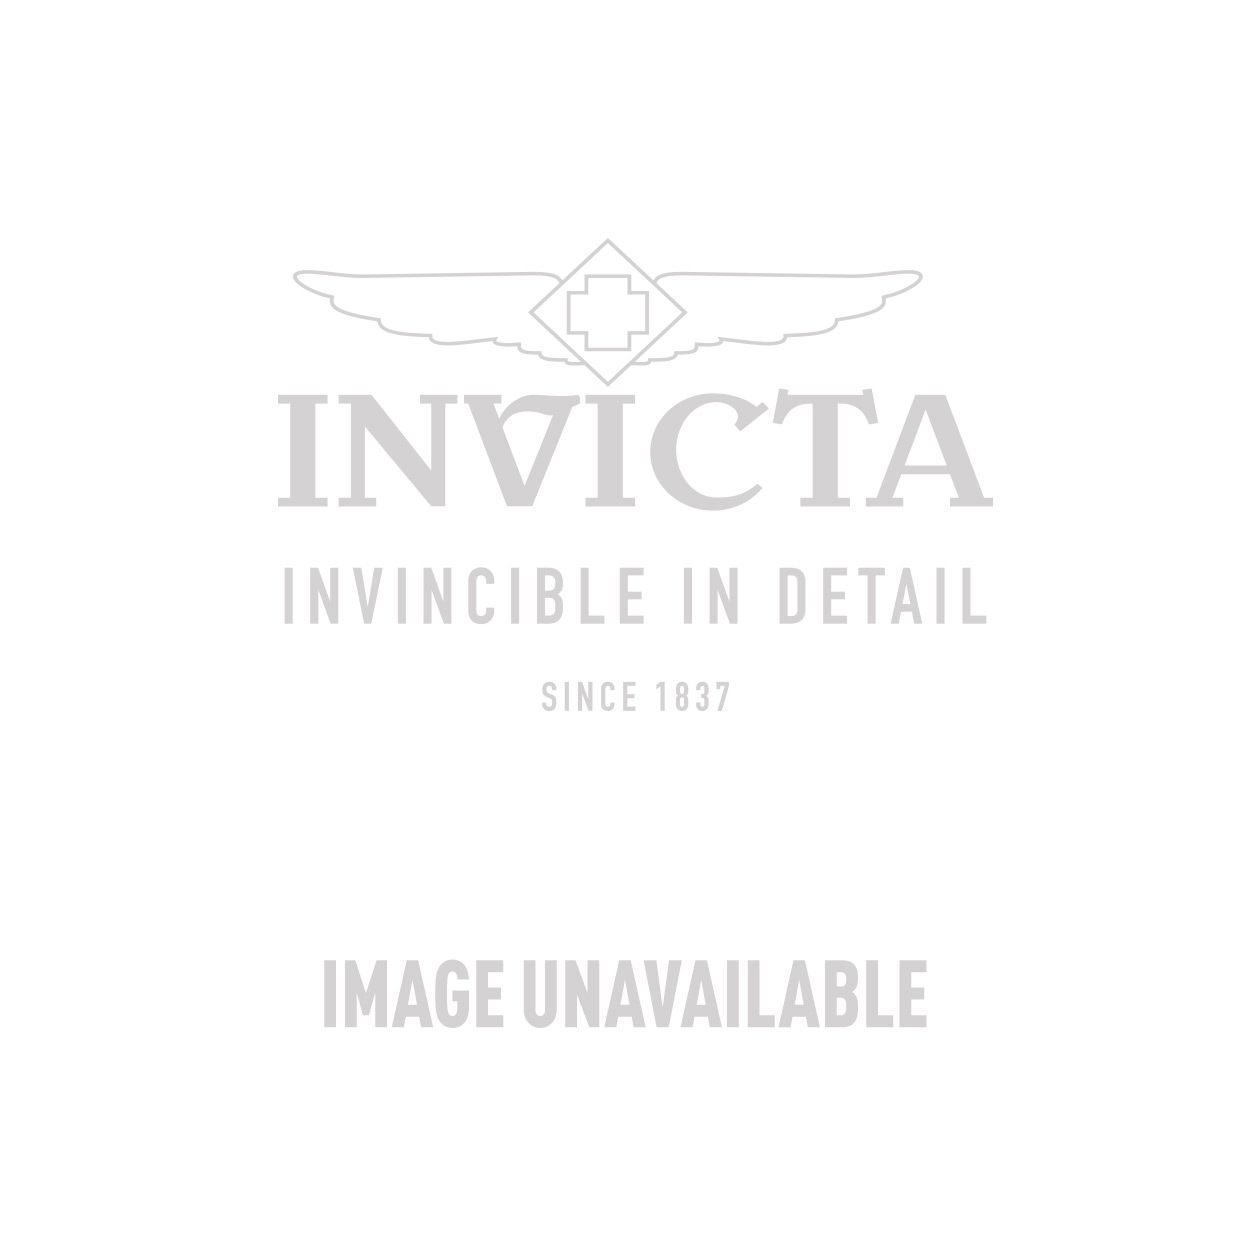 Invicta Subaqua Swiss Made Quartz Watch - Gold, Stainless Steel case Stainless Steel band - Model 20525